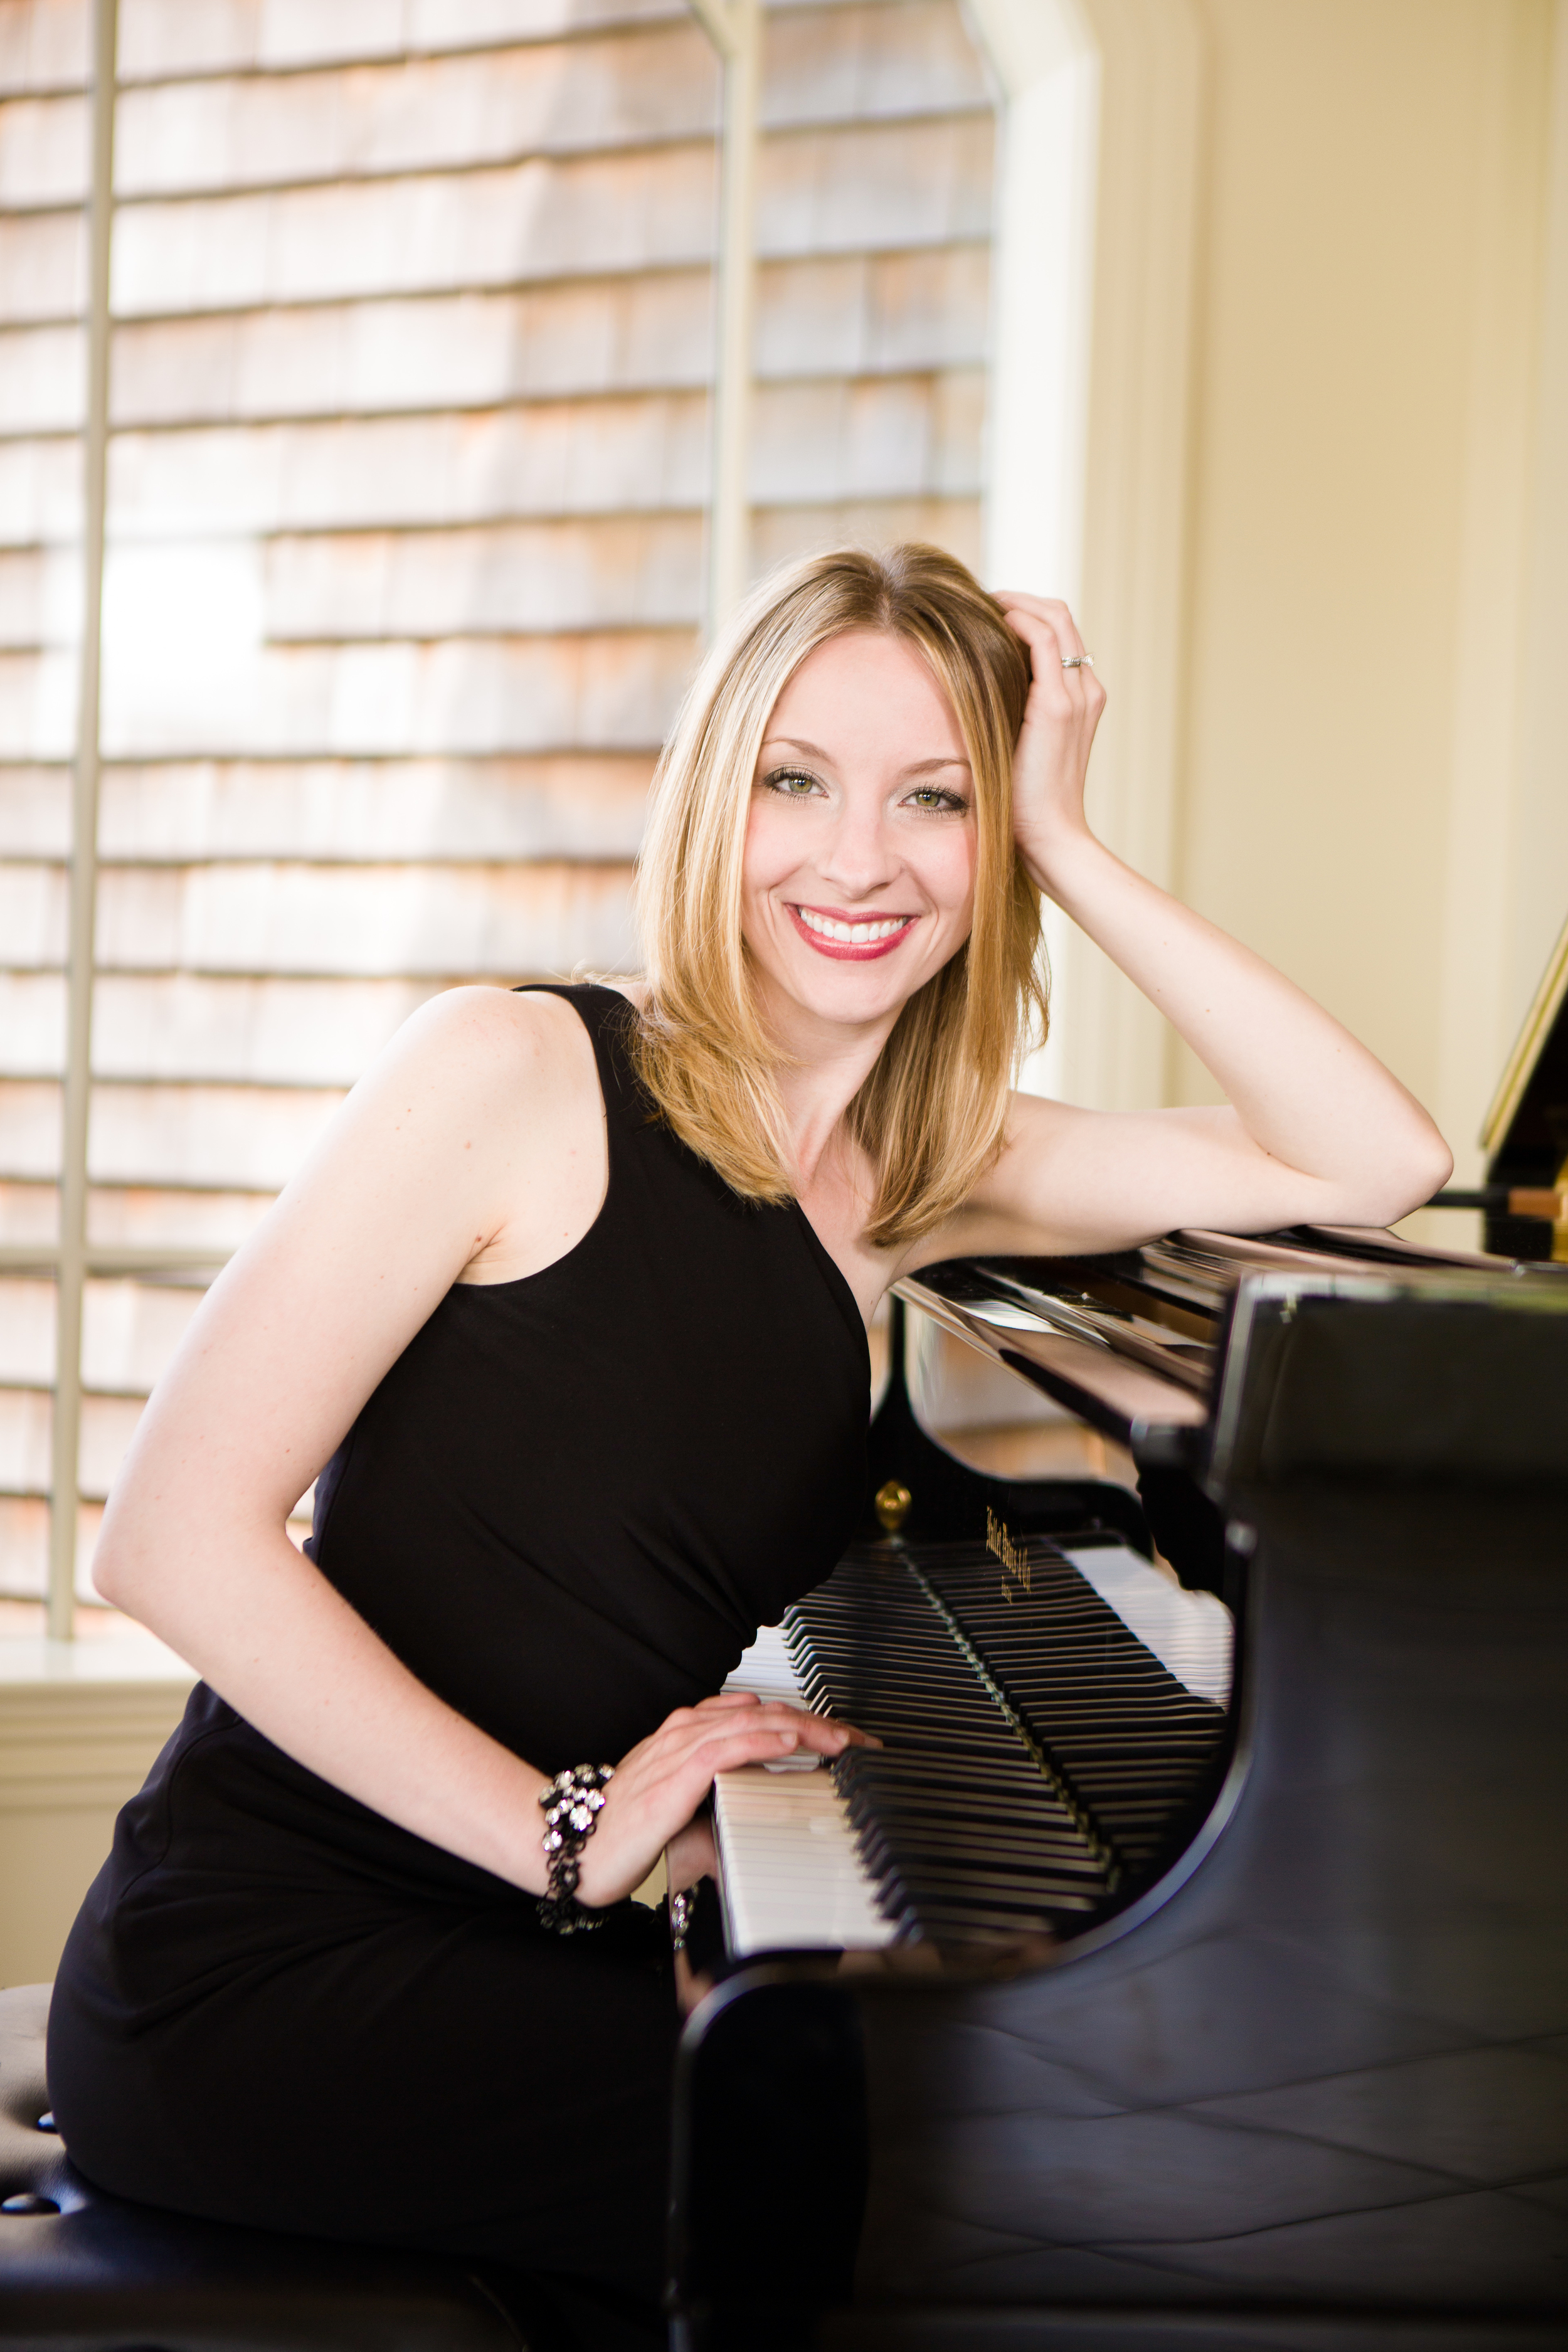 051Yvonne-pianist-singer-Vail-Fucci2456.jpg